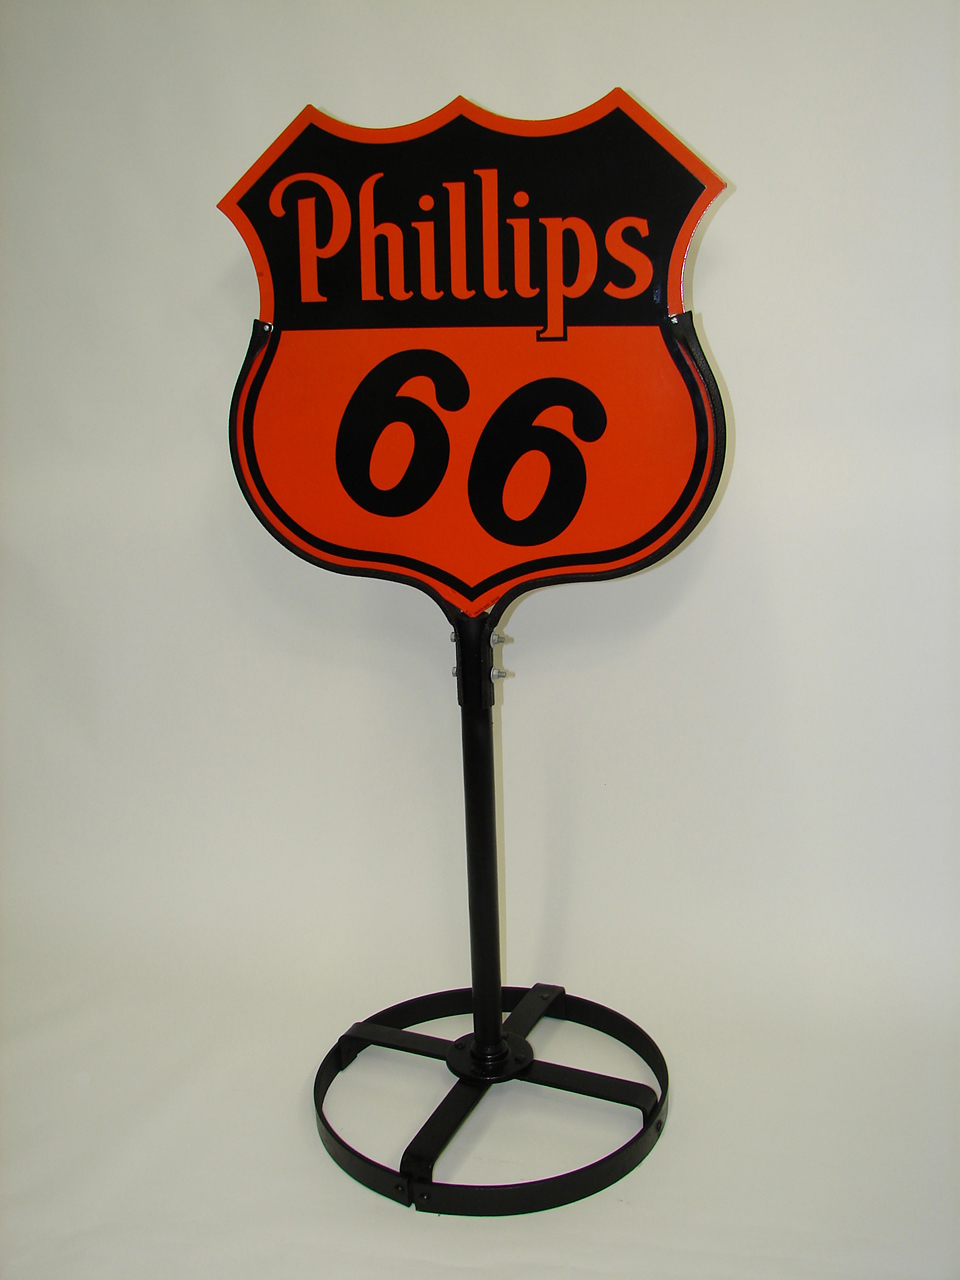 Near Perfect 1945 1930s Phillips 66 Doublel Sided Porcelain S